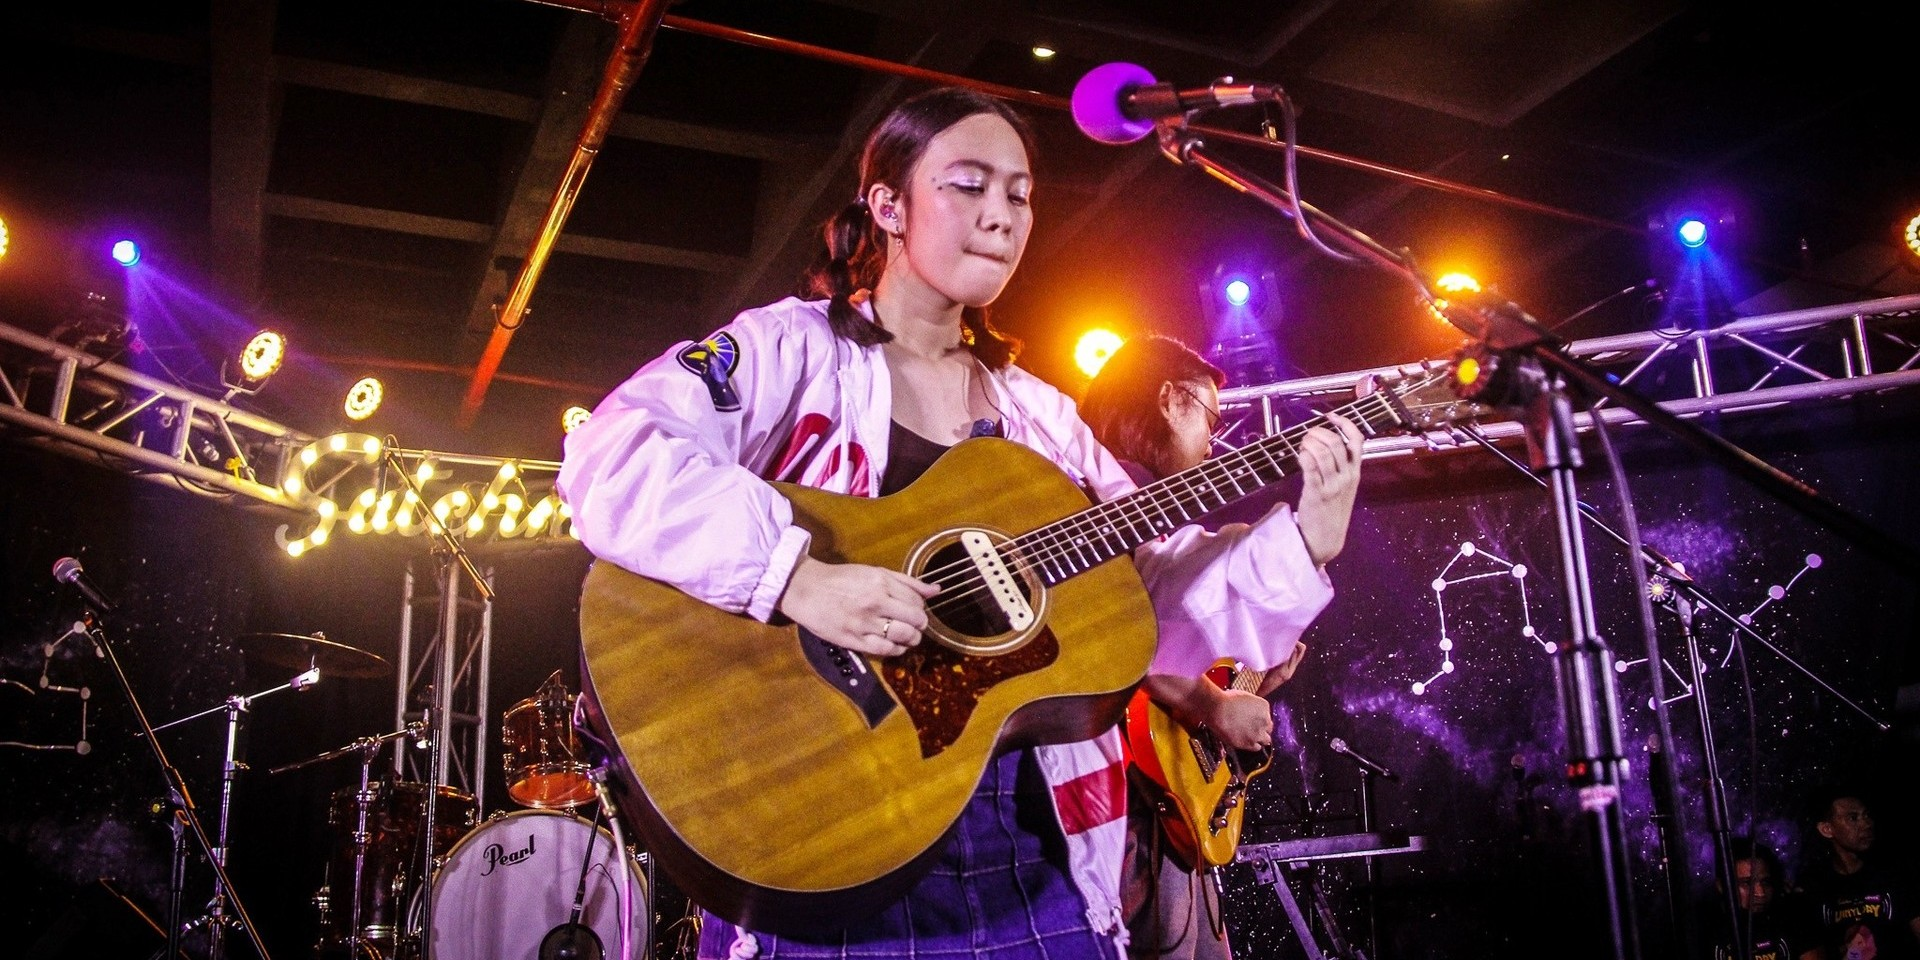 Filipina singer-songwriter Reese Lansangan's 'A Song About Space' is the soundtrack to NASA's new campaign #LaunchAmerica